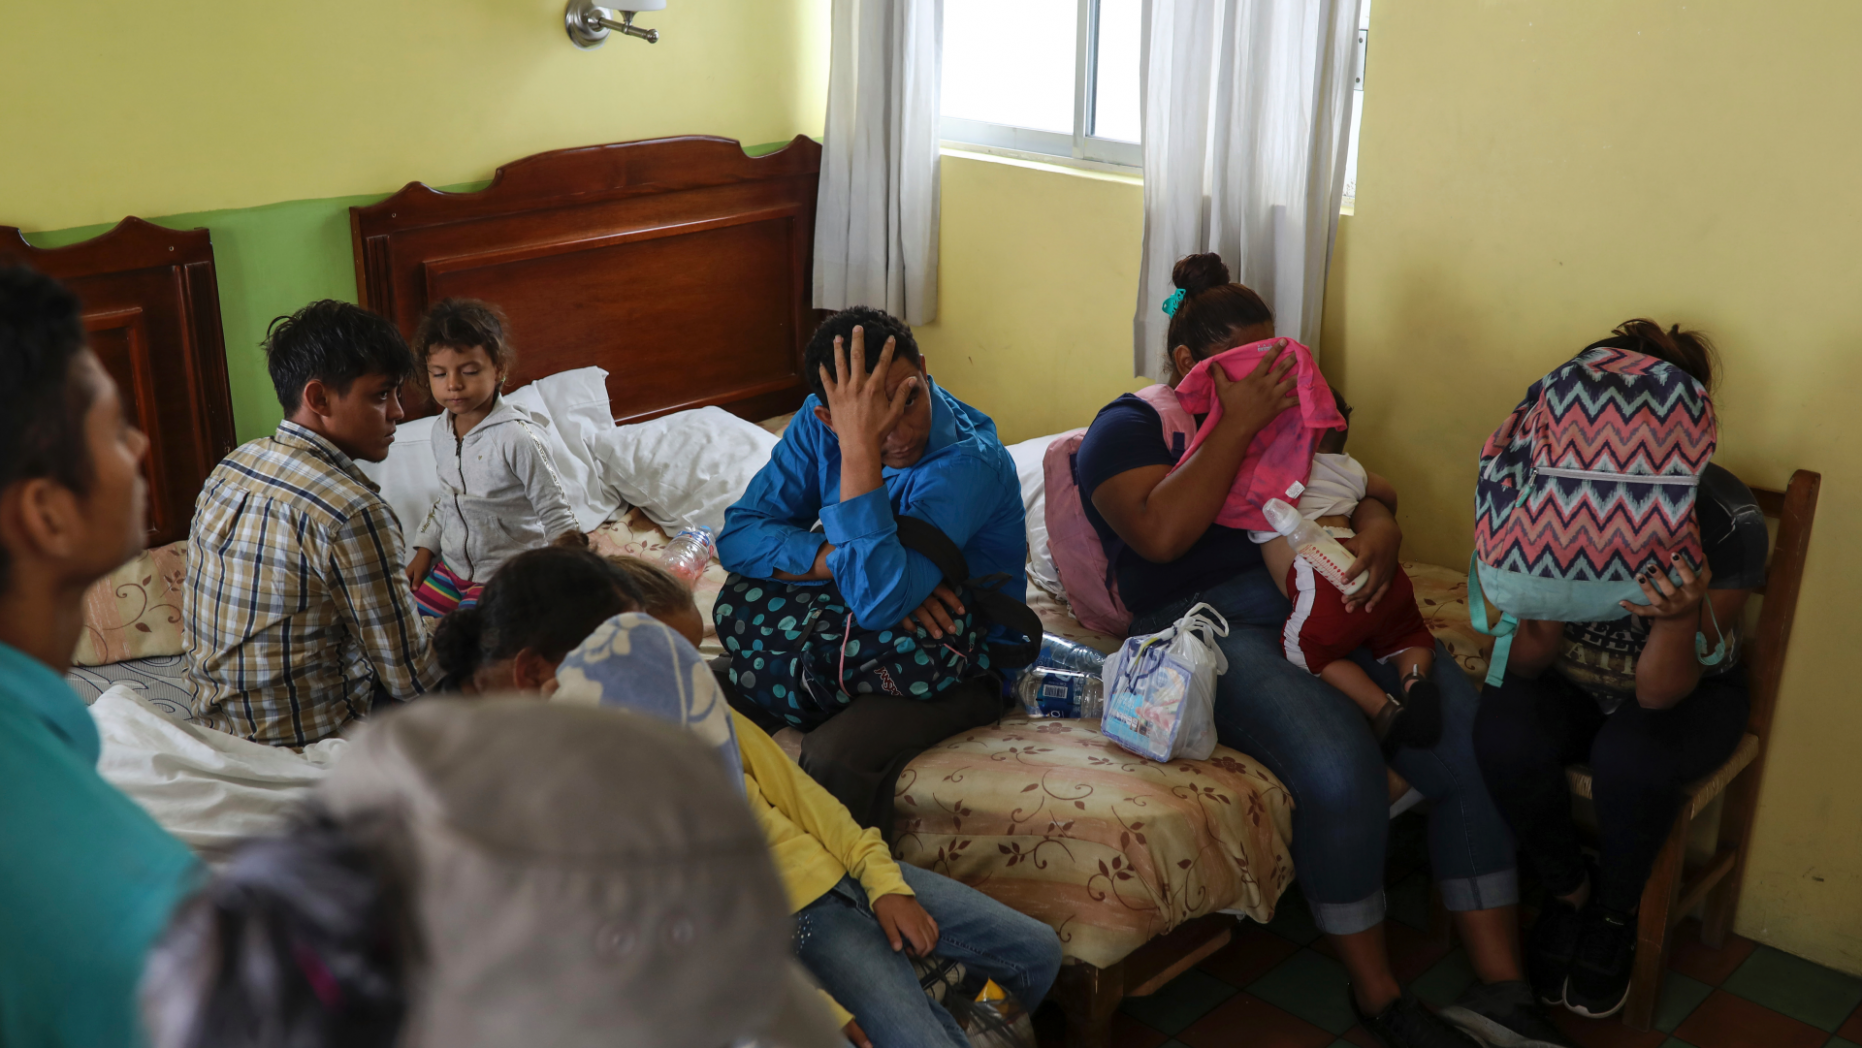 Central American migrants sit together inside a room at the Latino hotel during a raid by Mexican immigration agents